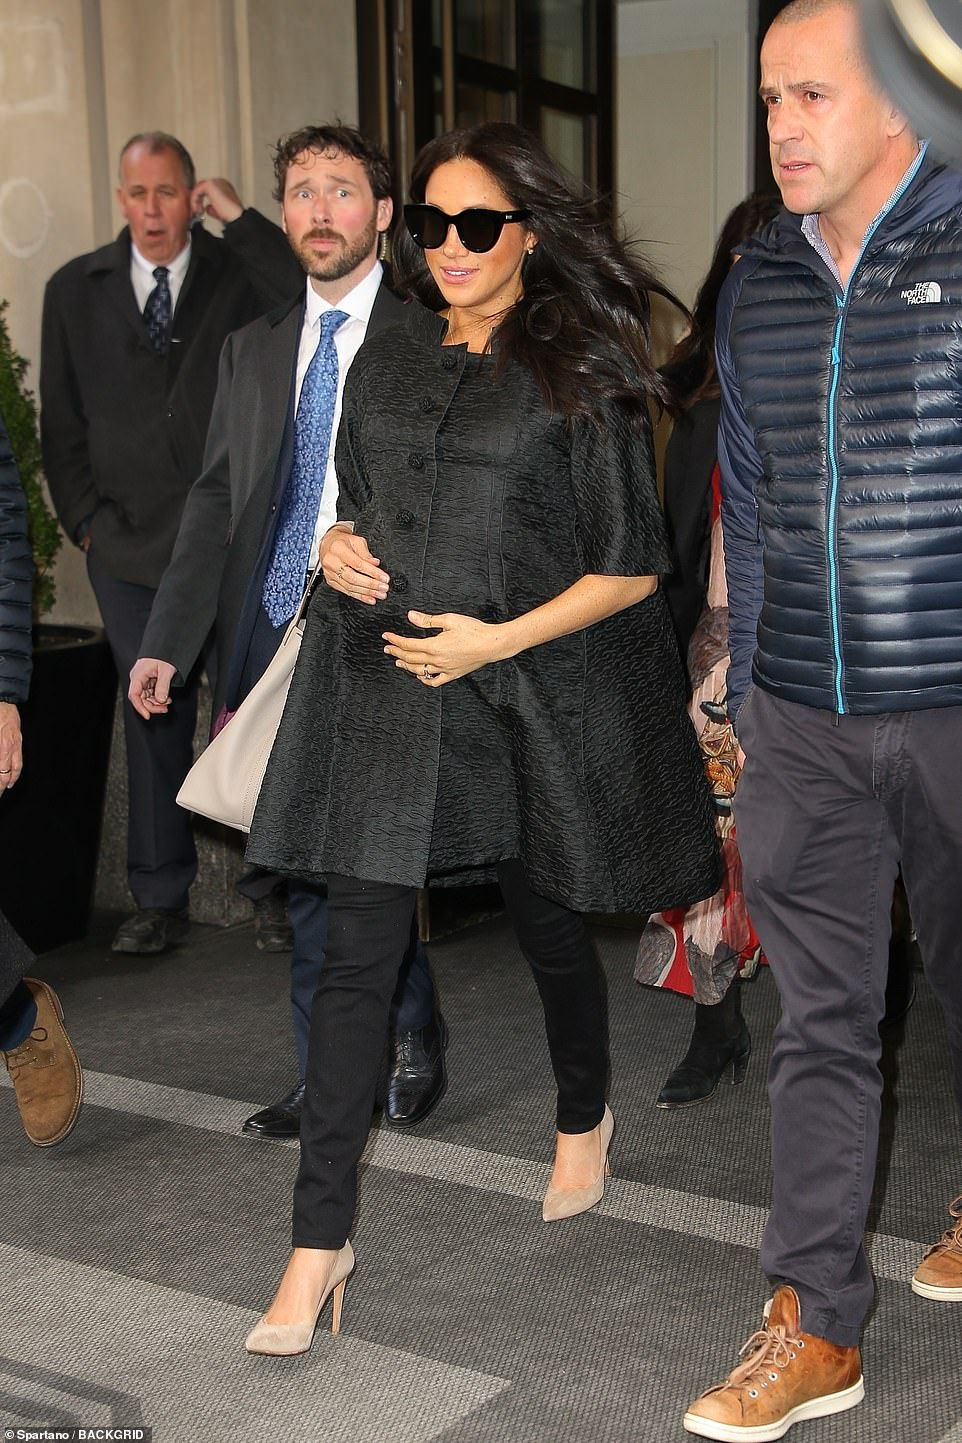 On the move: Meghan Markle was seen cradling her baby bump as she left the New York hotel where her baby shower is thought to be taking place, shortly after her guests began arriving